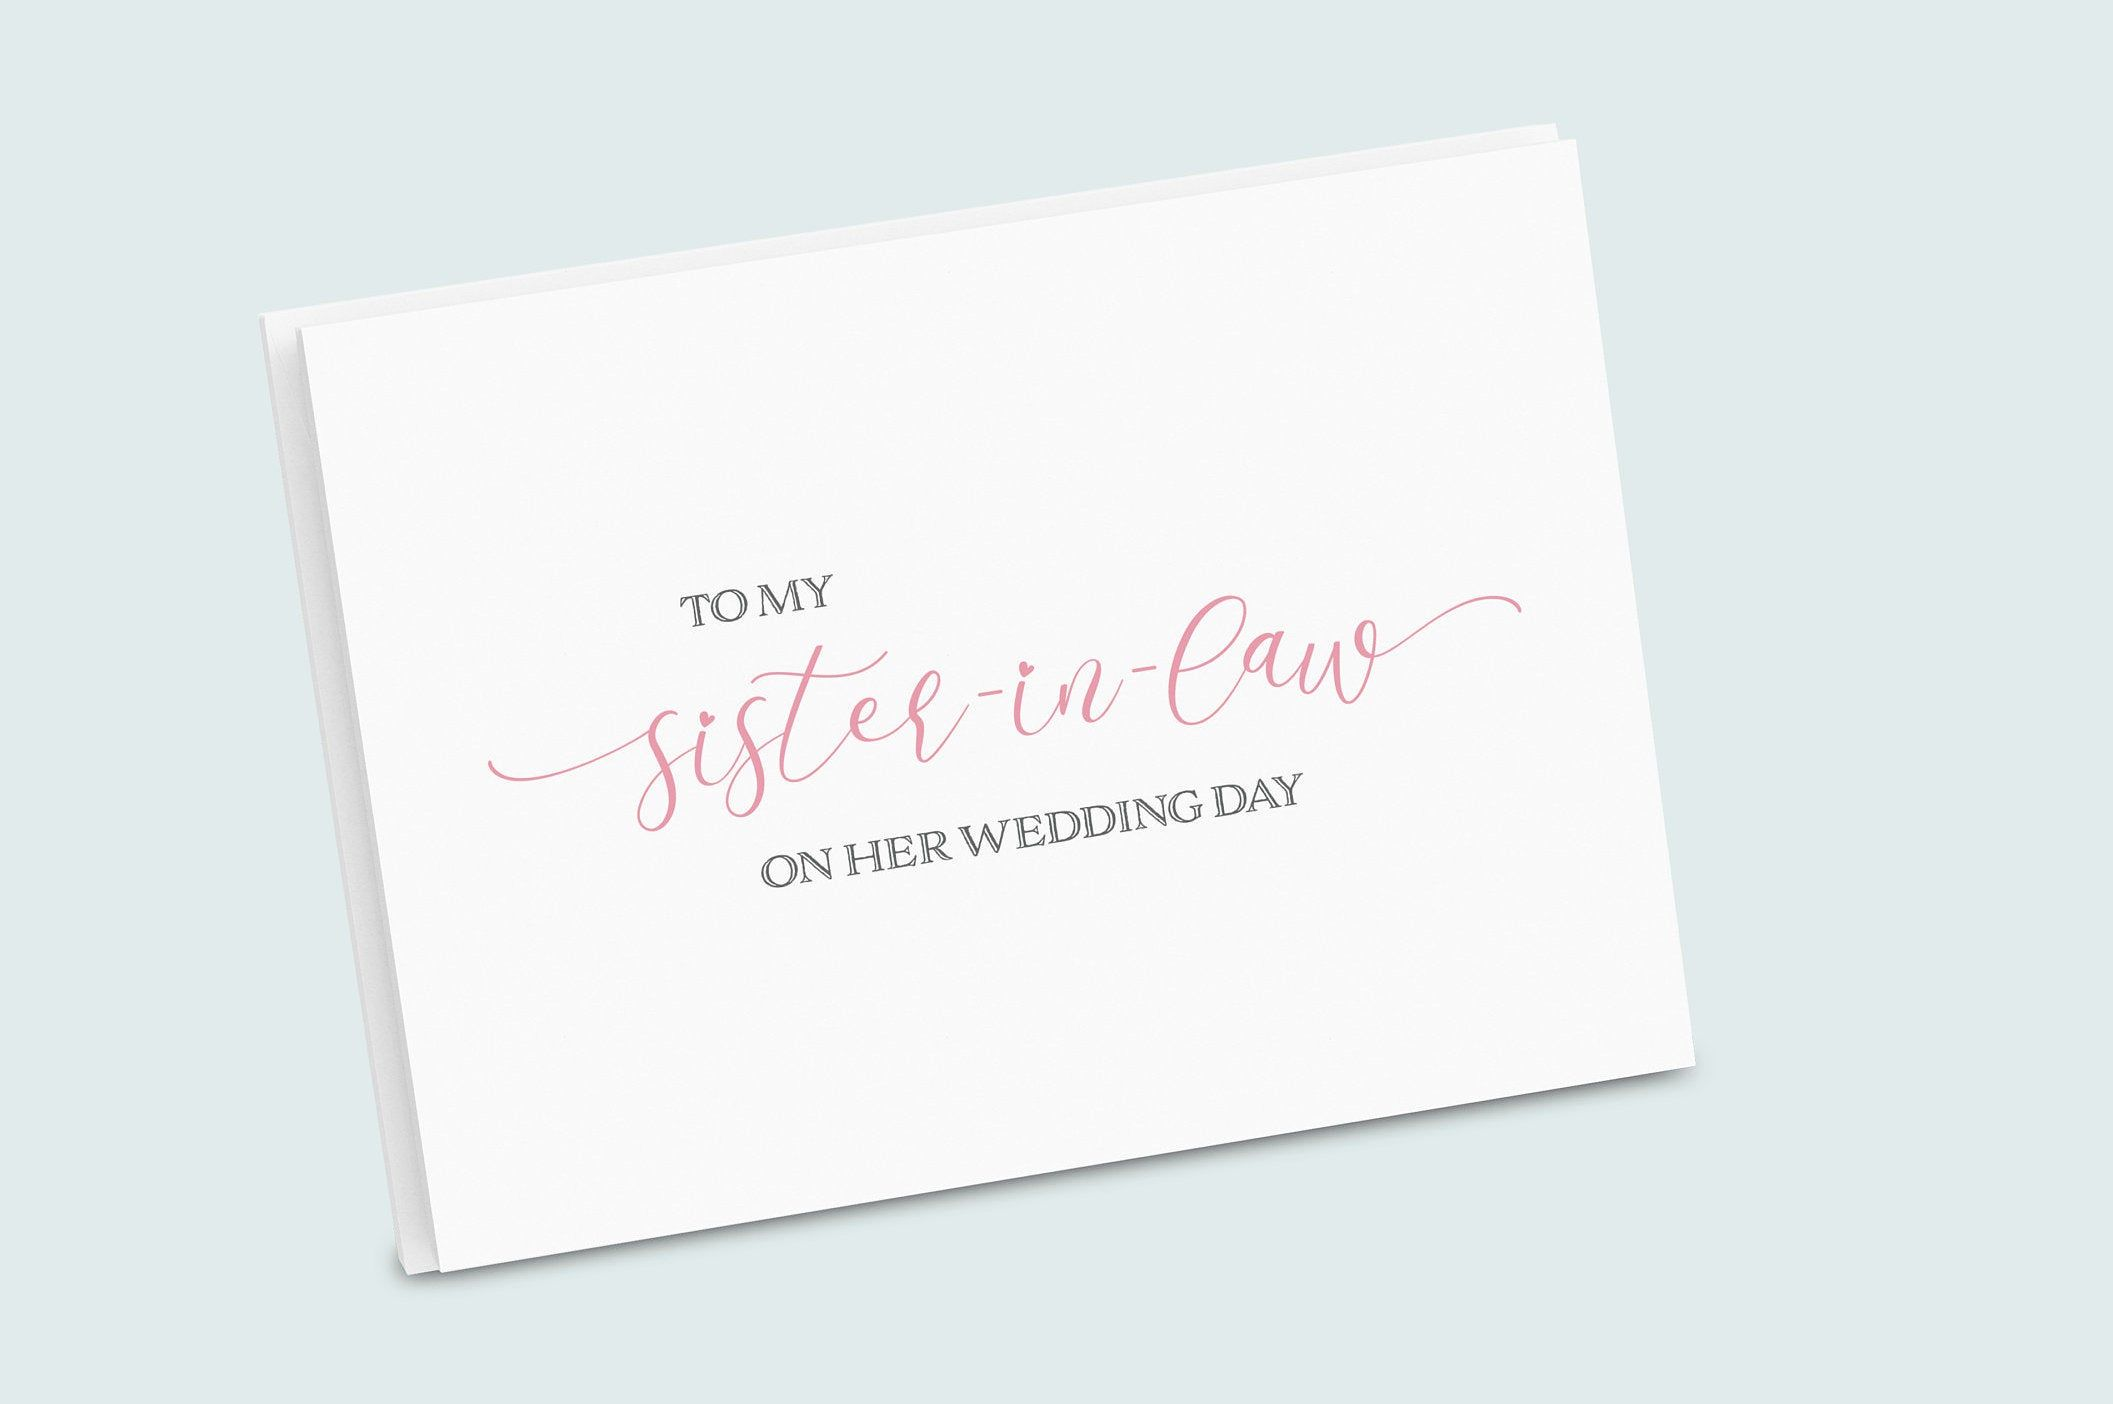 To My Sister-In-Law On My Wedding Day Wedding Day Card.